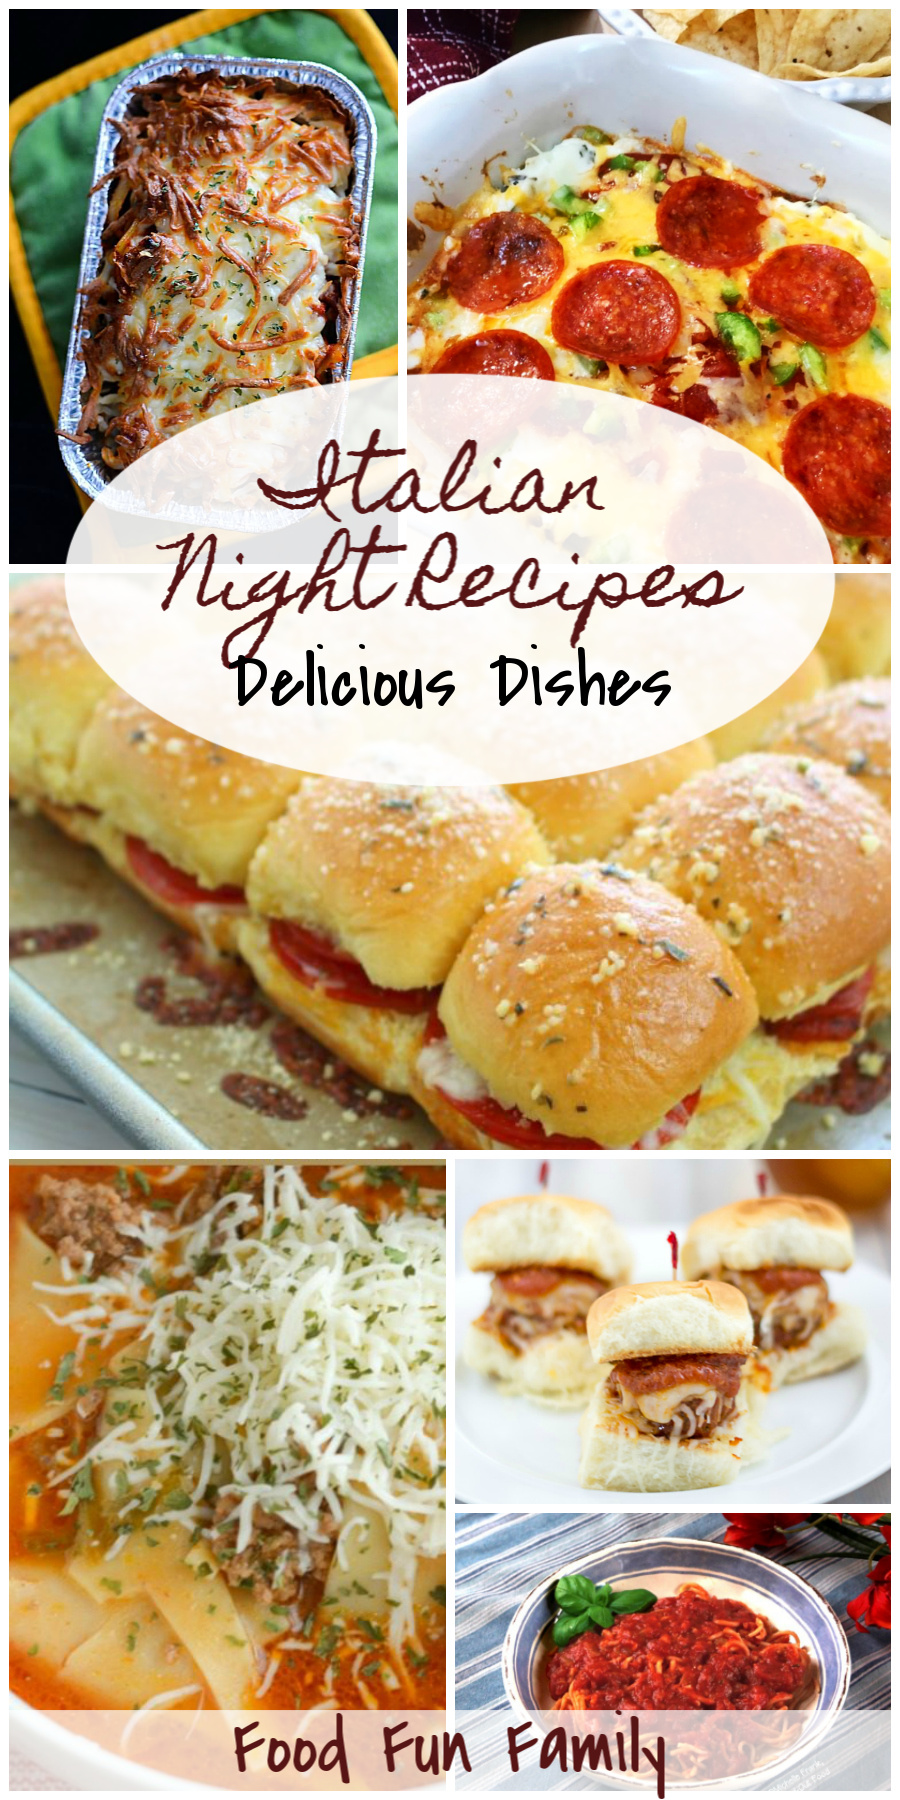 Italian night recipes - a Delicious Dishes Recipe Party with Food Fun Family